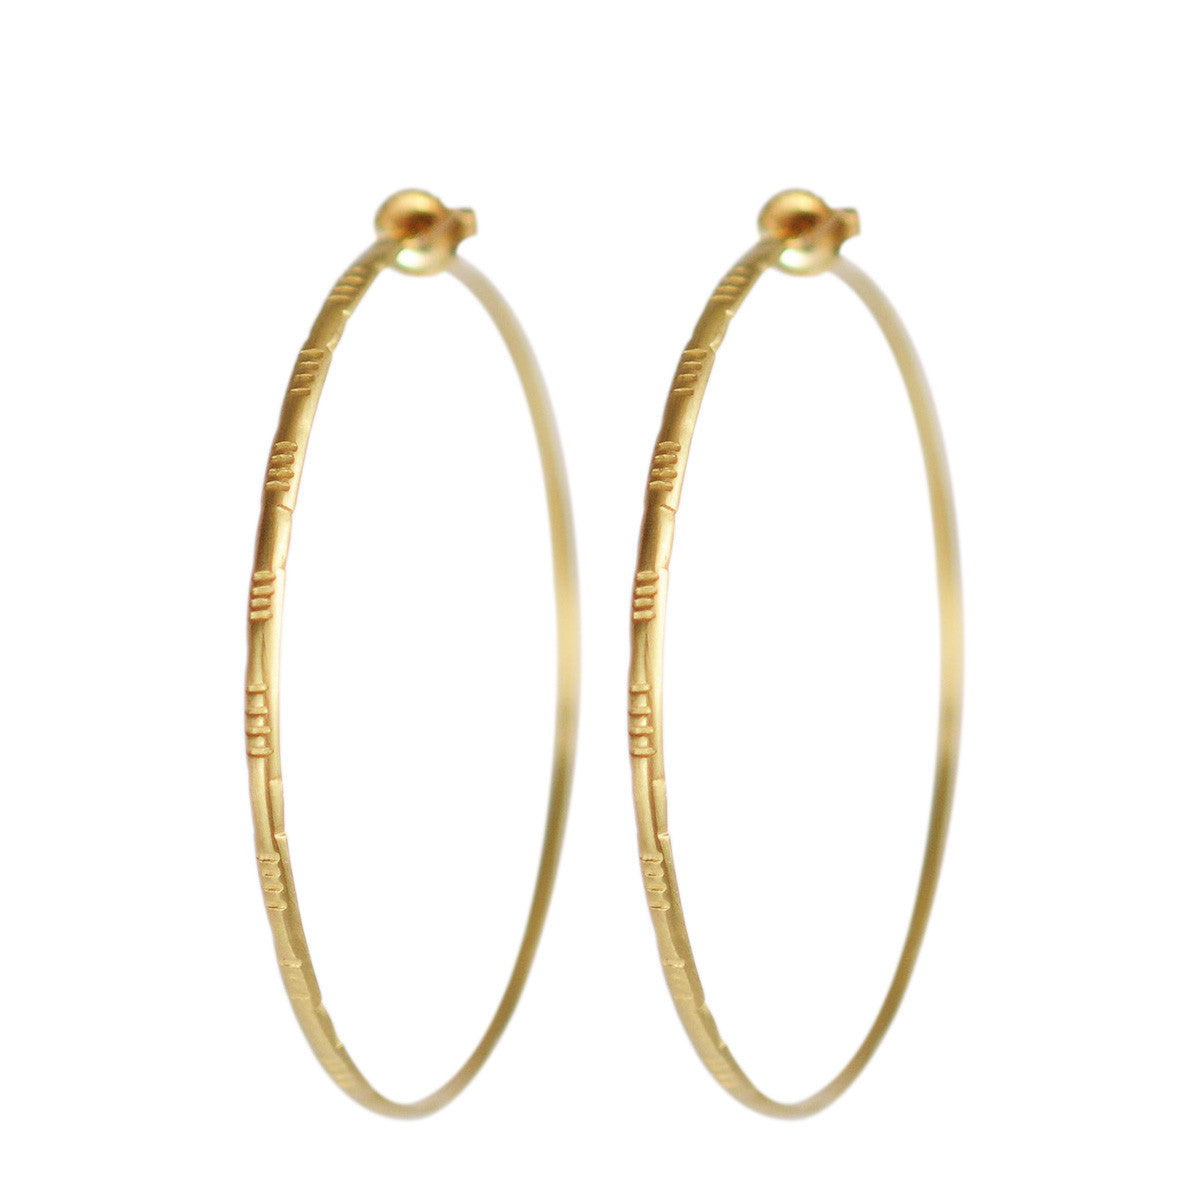 18K Gold Large Moroccan Endless Hoop Earrings